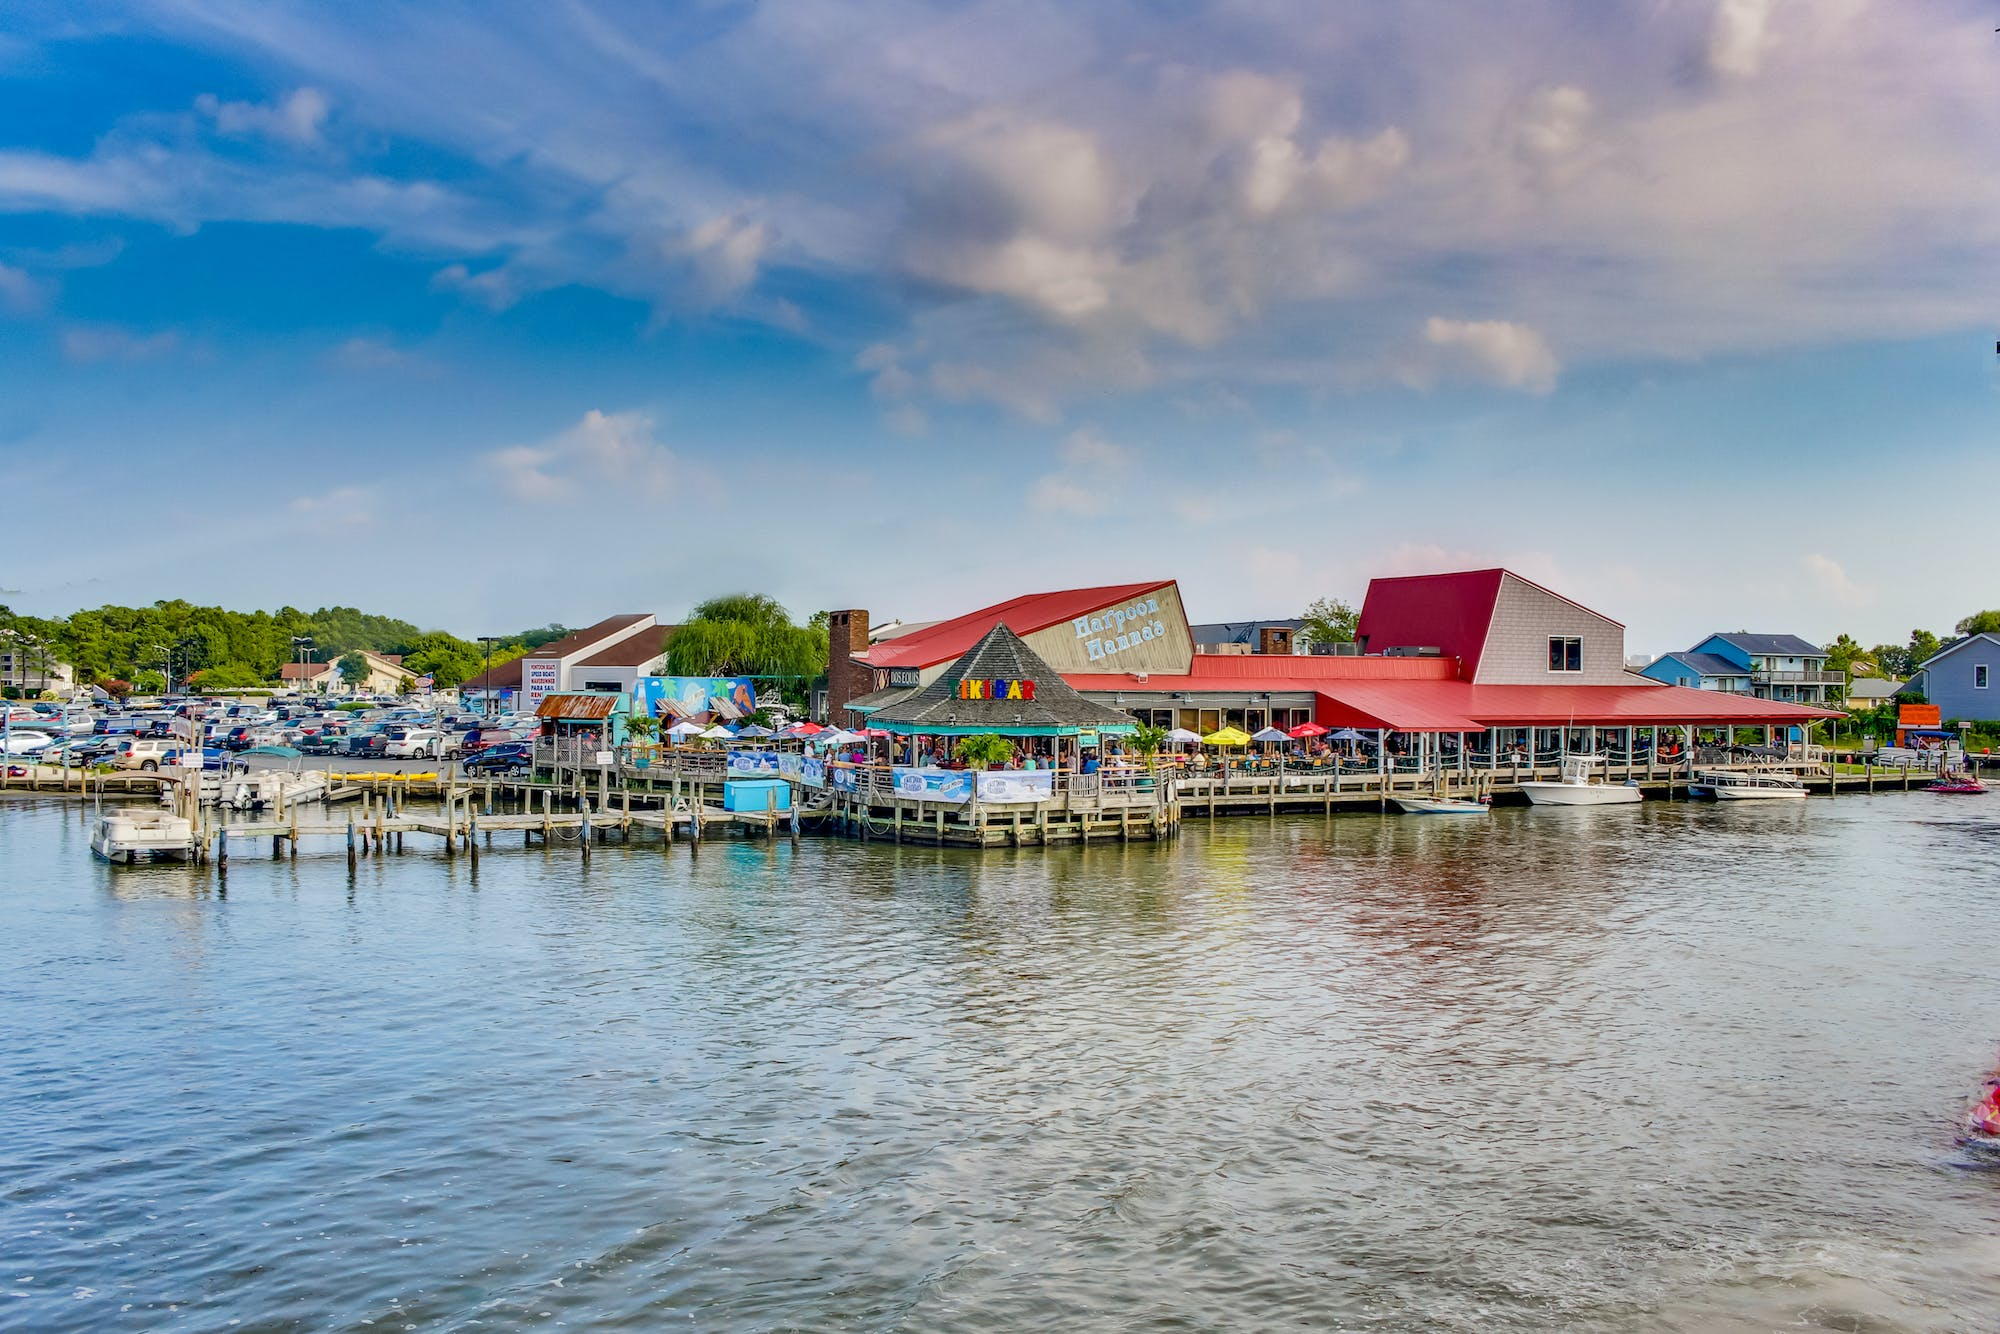 Dock and dockside dining located in Ocean City, Maryland